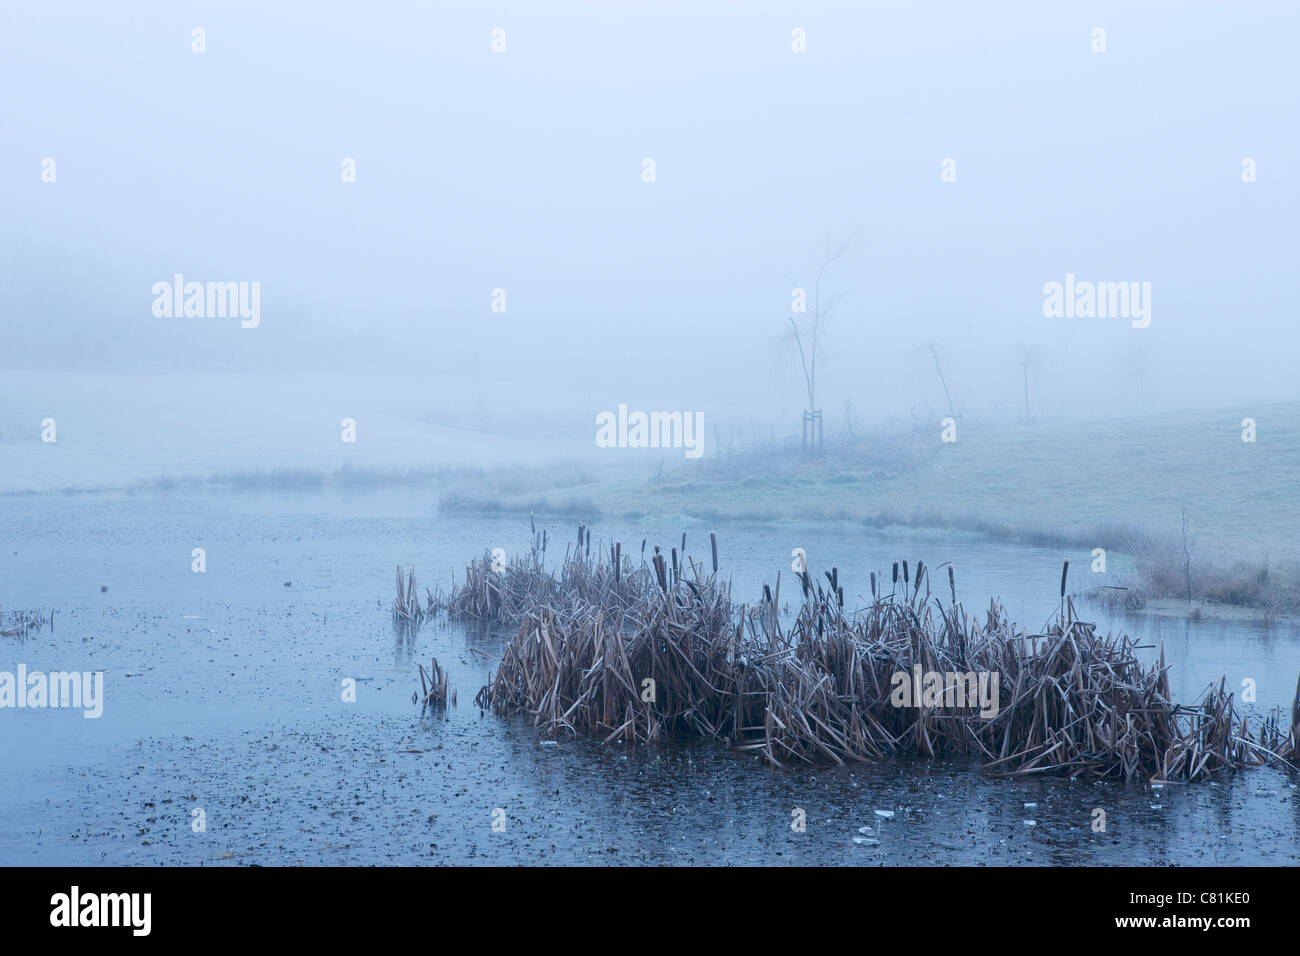 Morning stillness on winter morning in Denmark - Stock Image